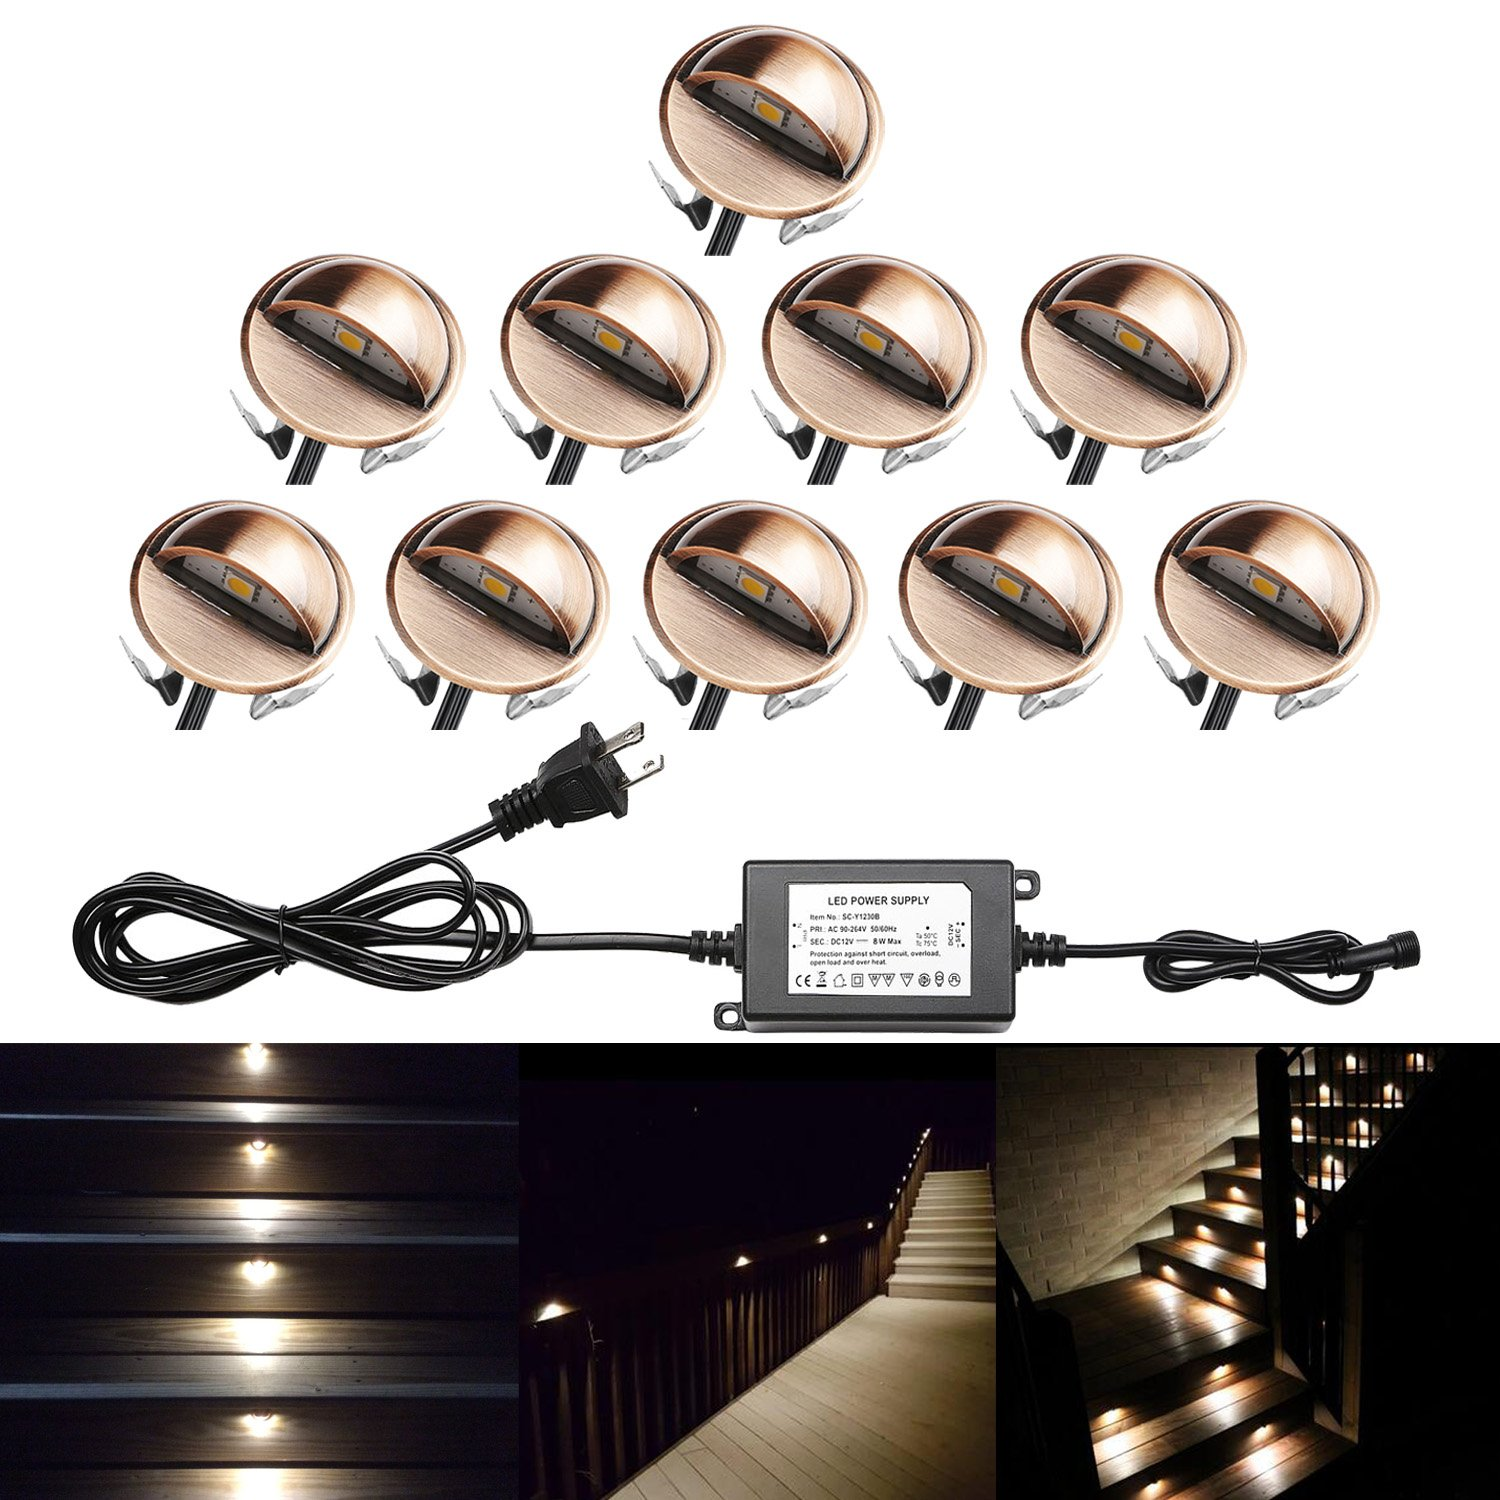 QACA Pack of 10 LED Stair Light Low Voltage Waterproof IP65 Outdoor Φ1.38'' Wood Recessed Warm White LED Deck Lighting Yard Garden Patio Step Landscape Pathway Decor Lamp, Bronze